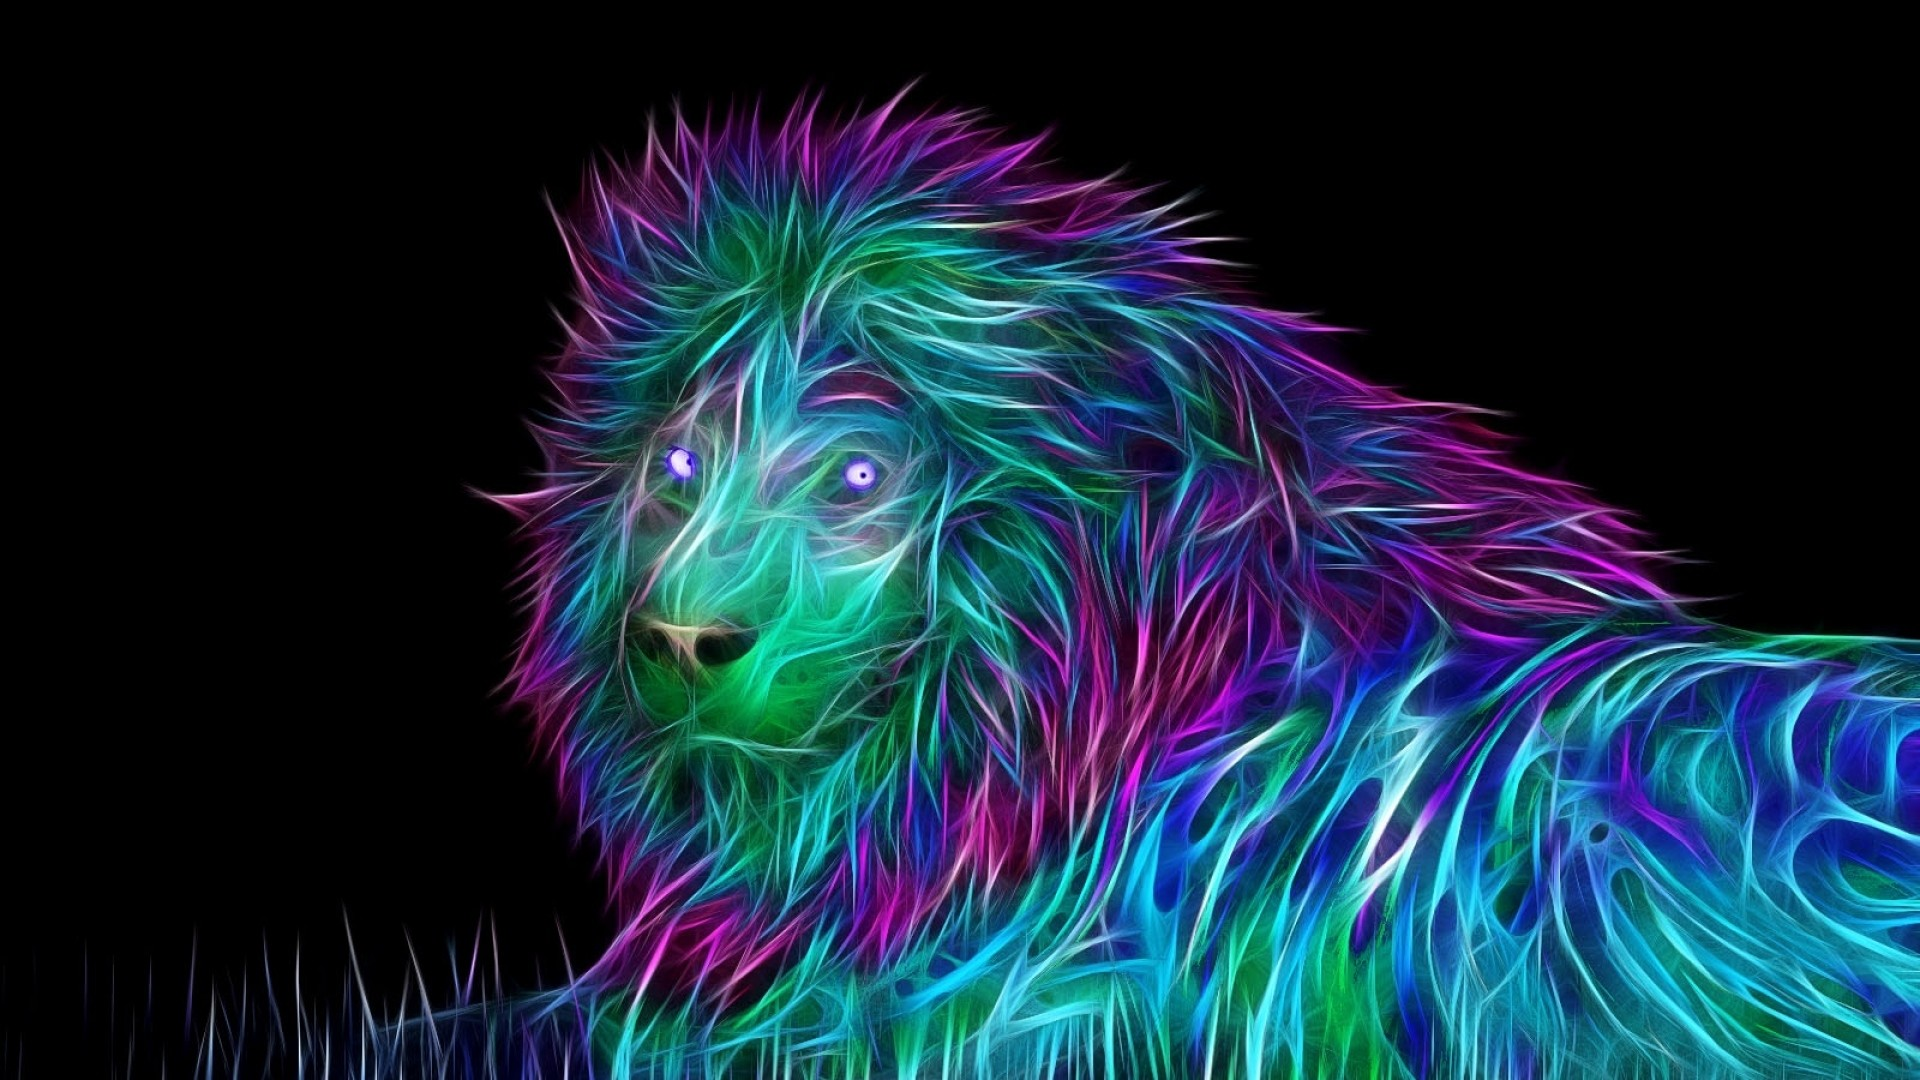 1920x1080 Preview wallpaper abstract, 3d, art, lion